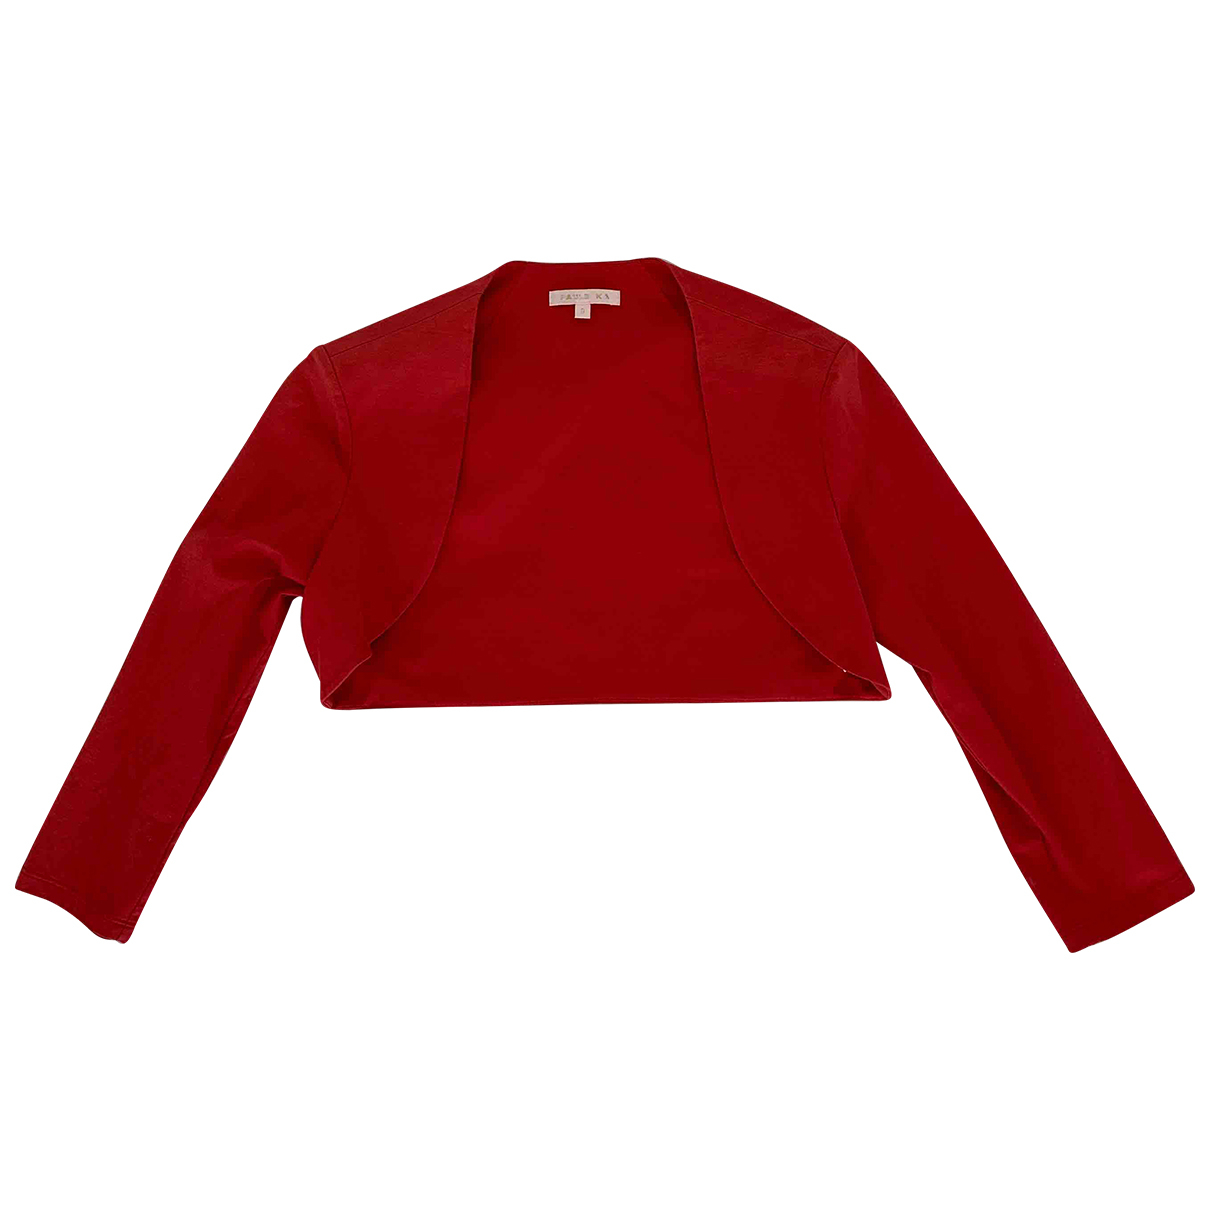 Paule Ka \N Red Cotton jacket for Women S International